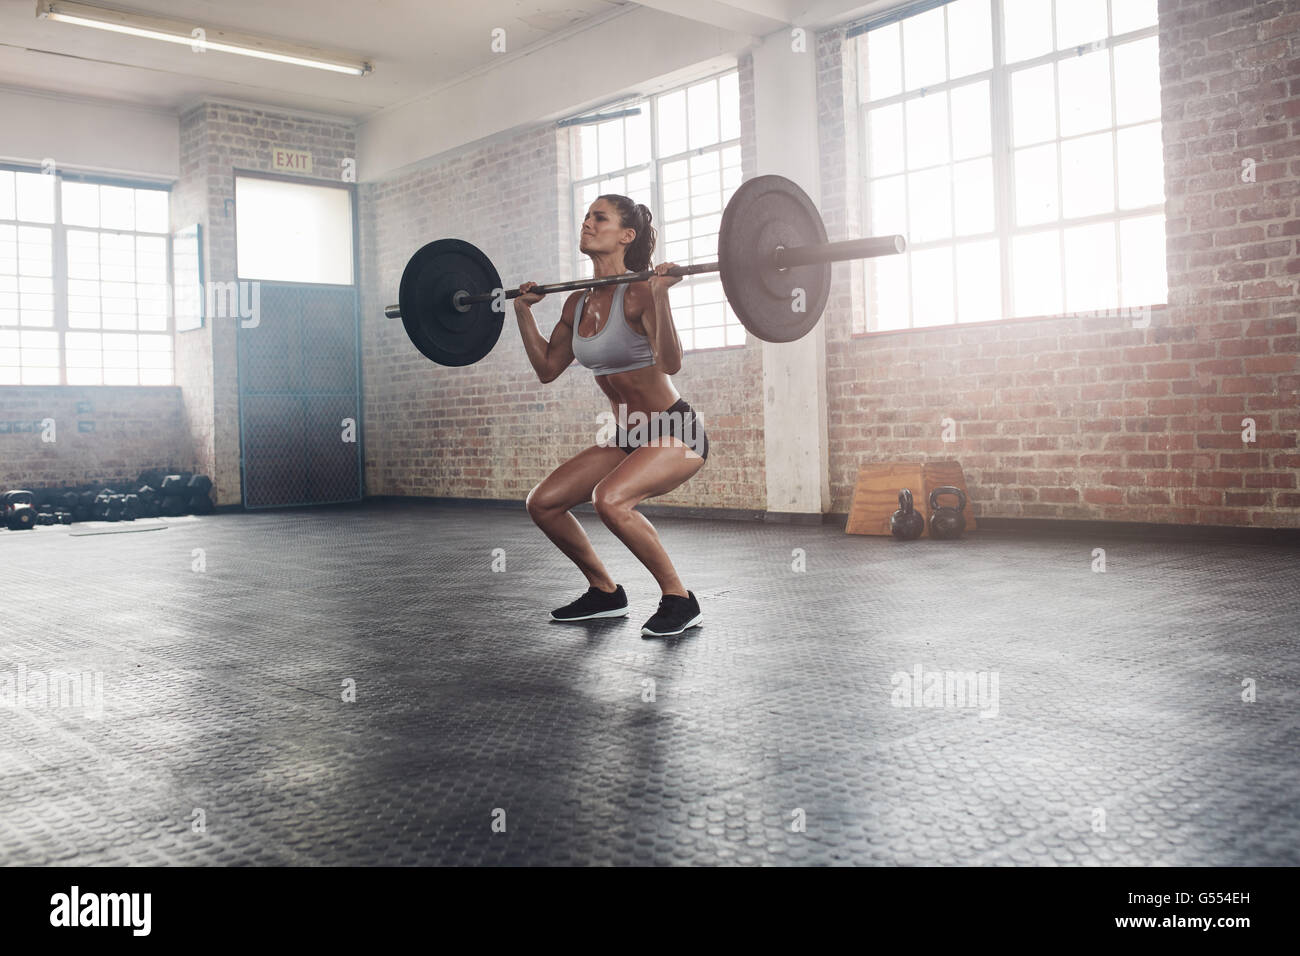 Female bodybuilder doing exercise with a heavy weight bar in gym. Full length shot of fitness woman practicing weightlifting - Stock Image